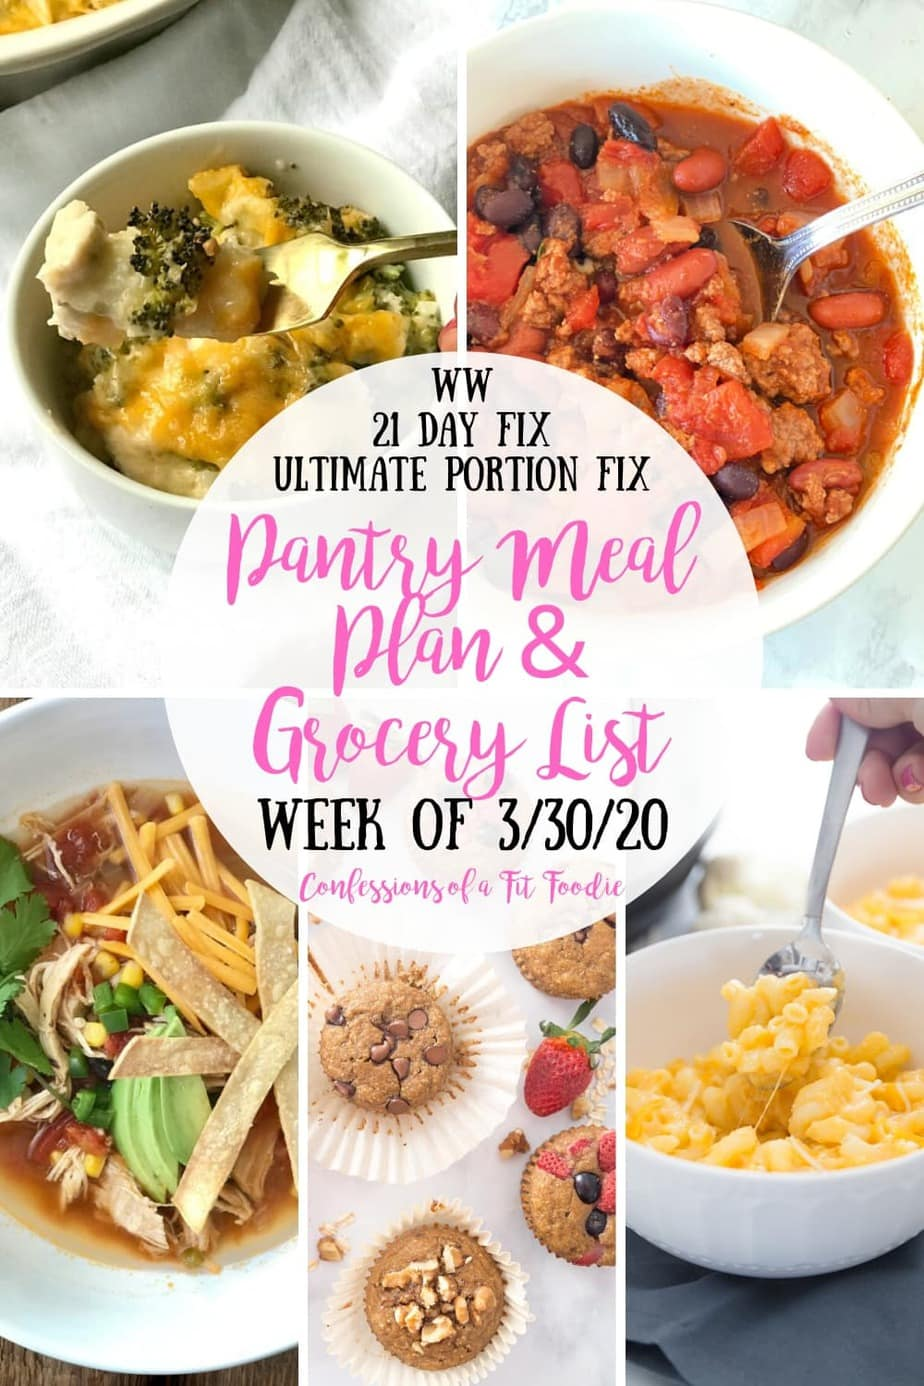 Meal Plan Grocery List Week Of 3 30 20 21 Day Fix Meal Plan Ww Meal Plan Confessions Of A Fit Foodie